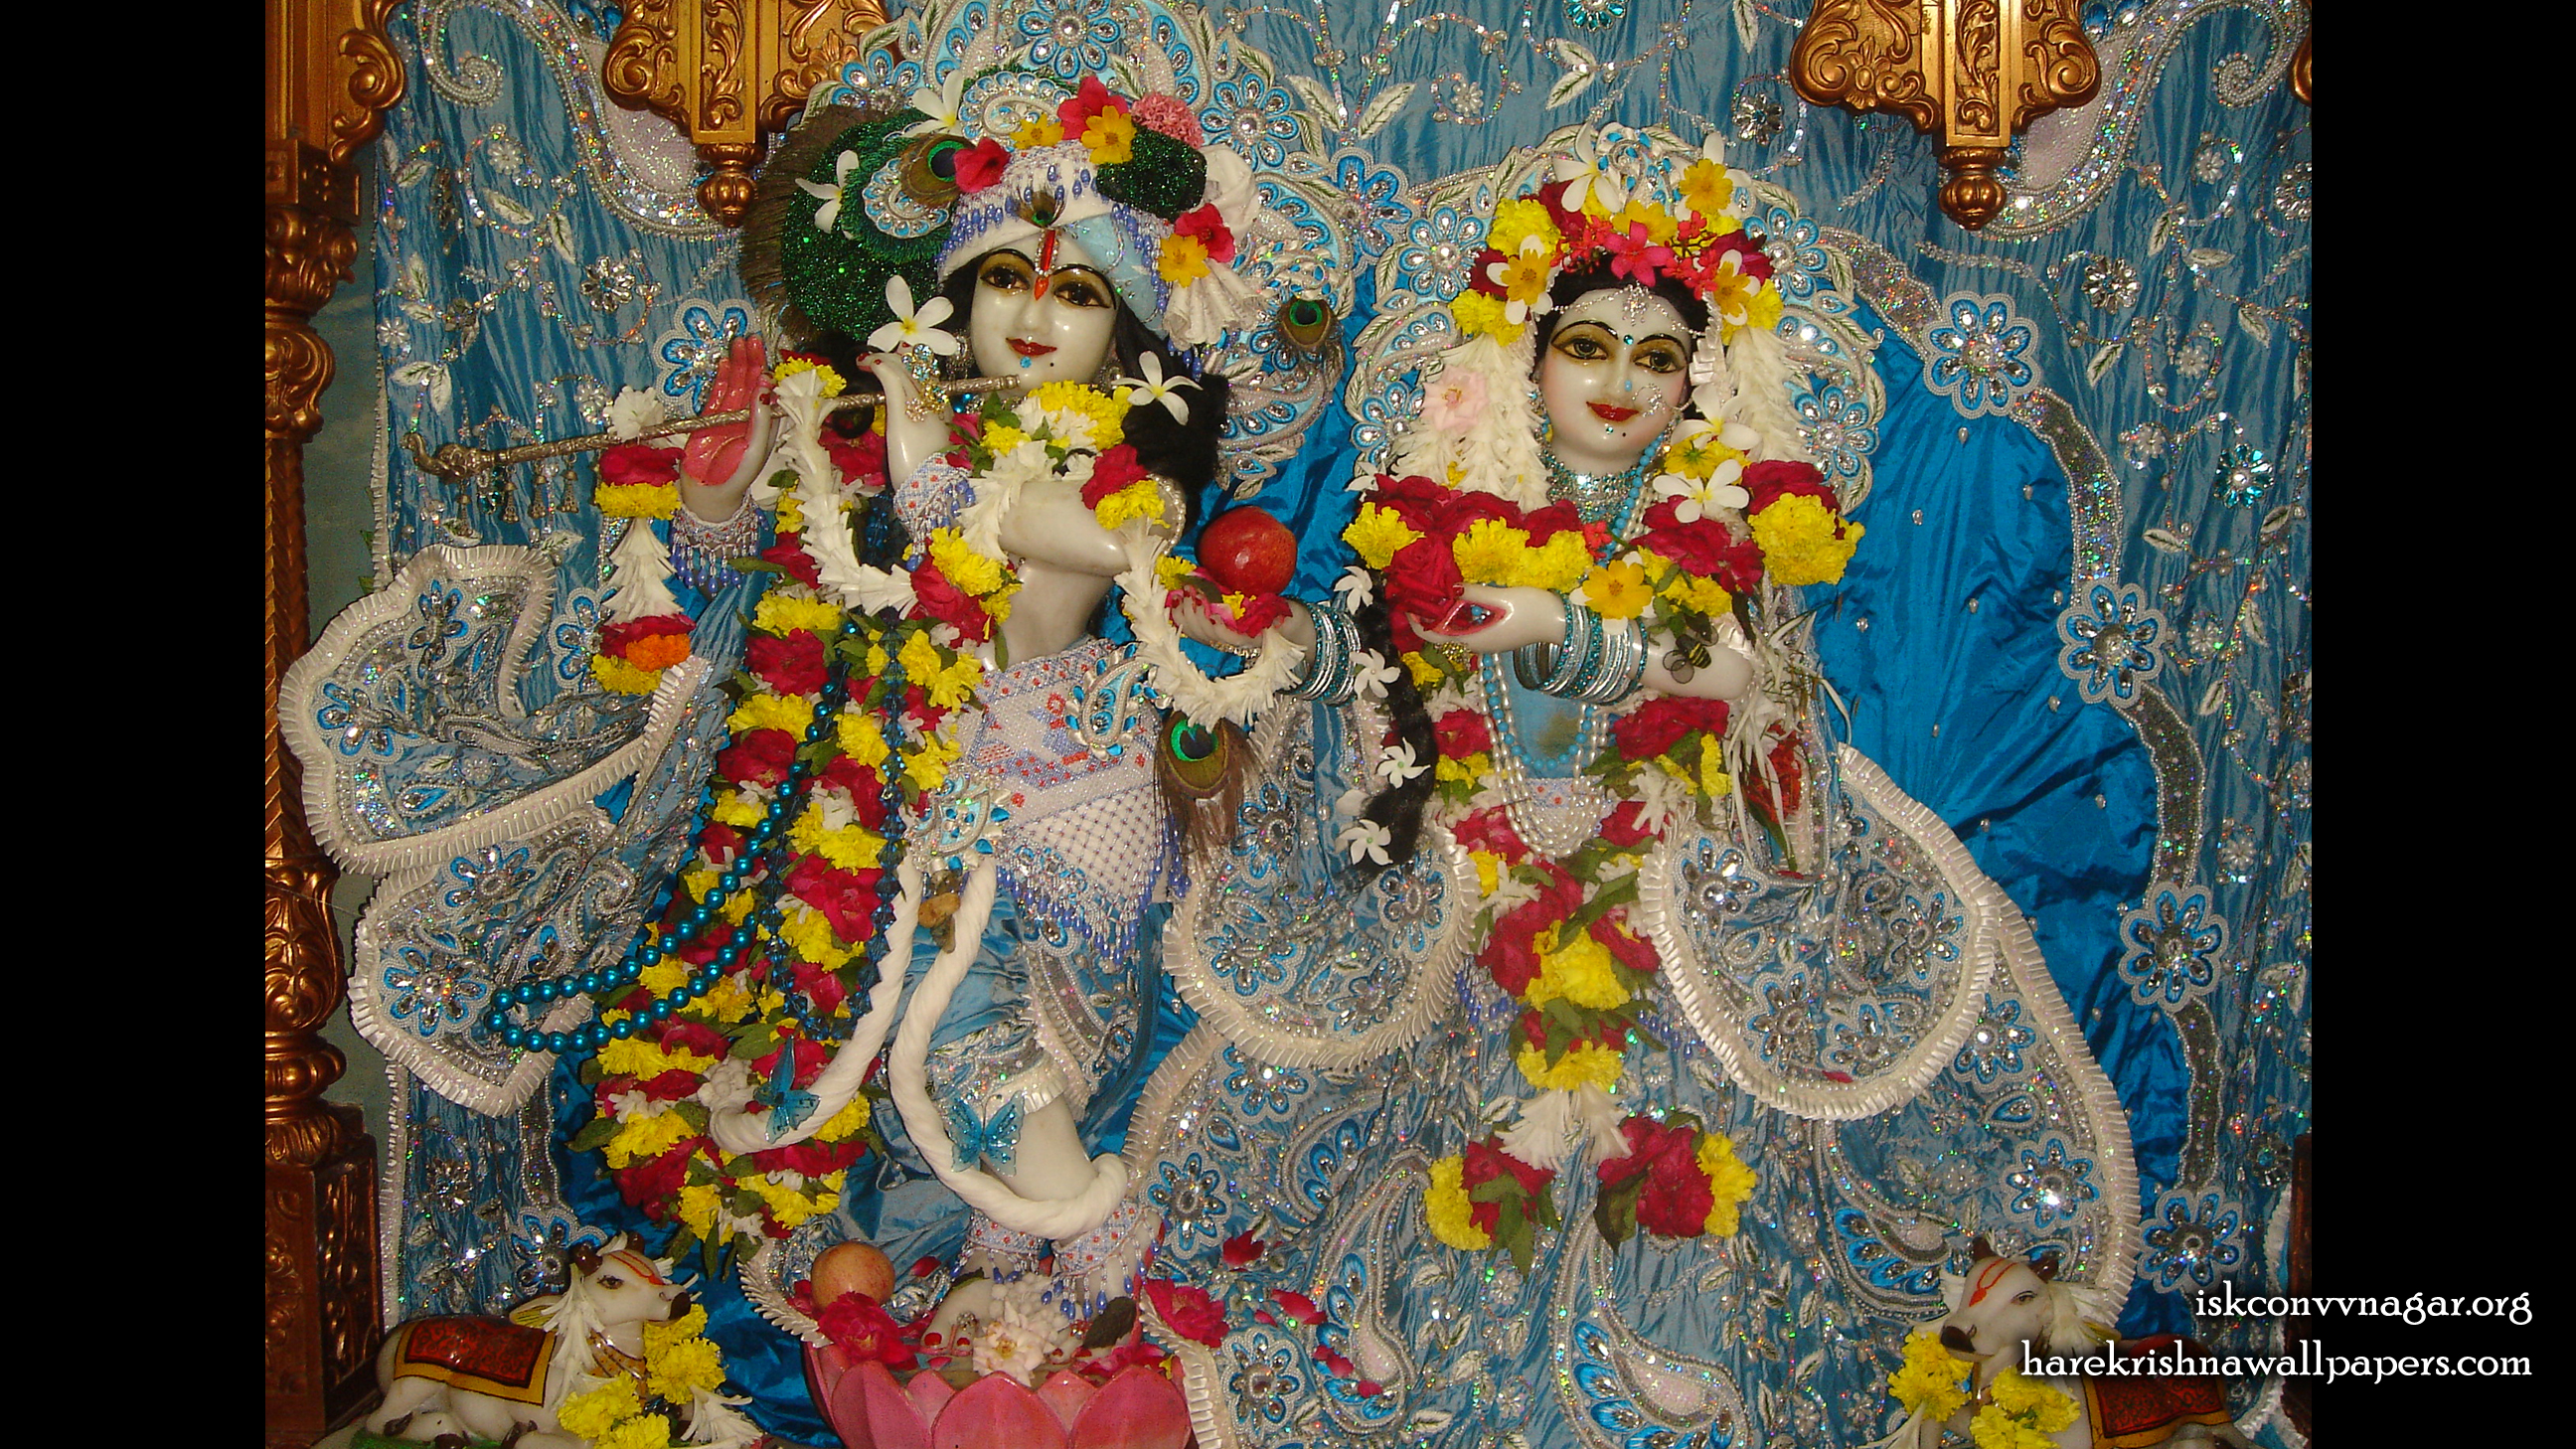 Sri Sri Radha Giridhari Wallpaper (032) Size 2400x1350 Download